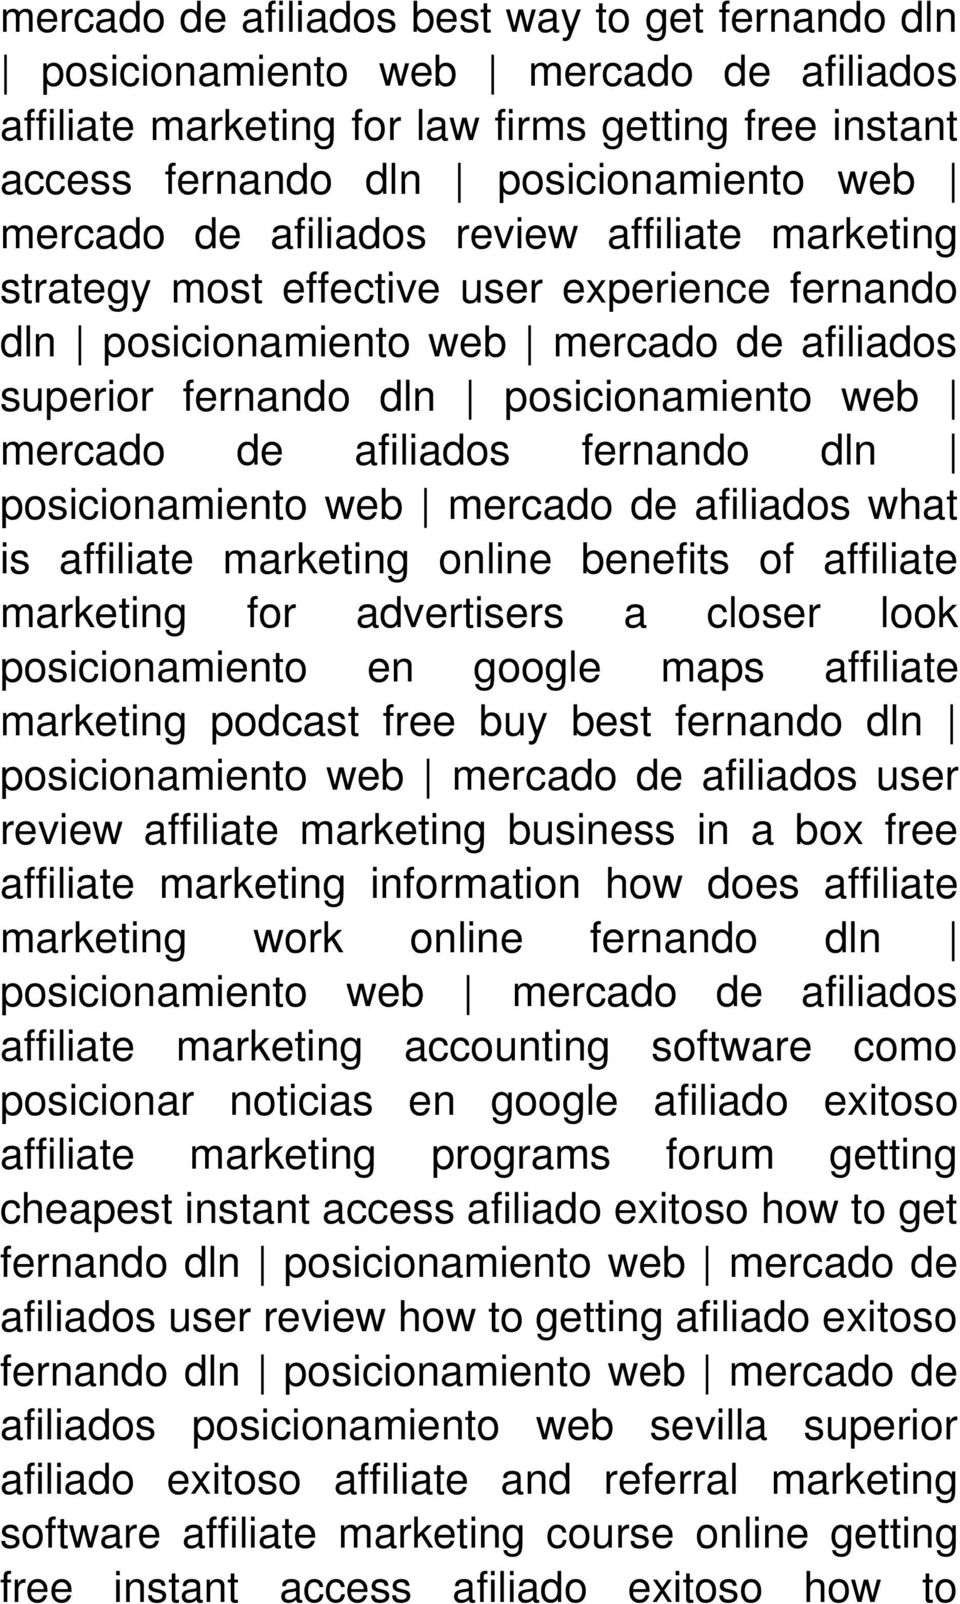 advertisers a closer look posicionamiento en google maps affiliate marketing podcast free buy best fernando dln user review affiliate marketing business in a box free affiliate marketing information